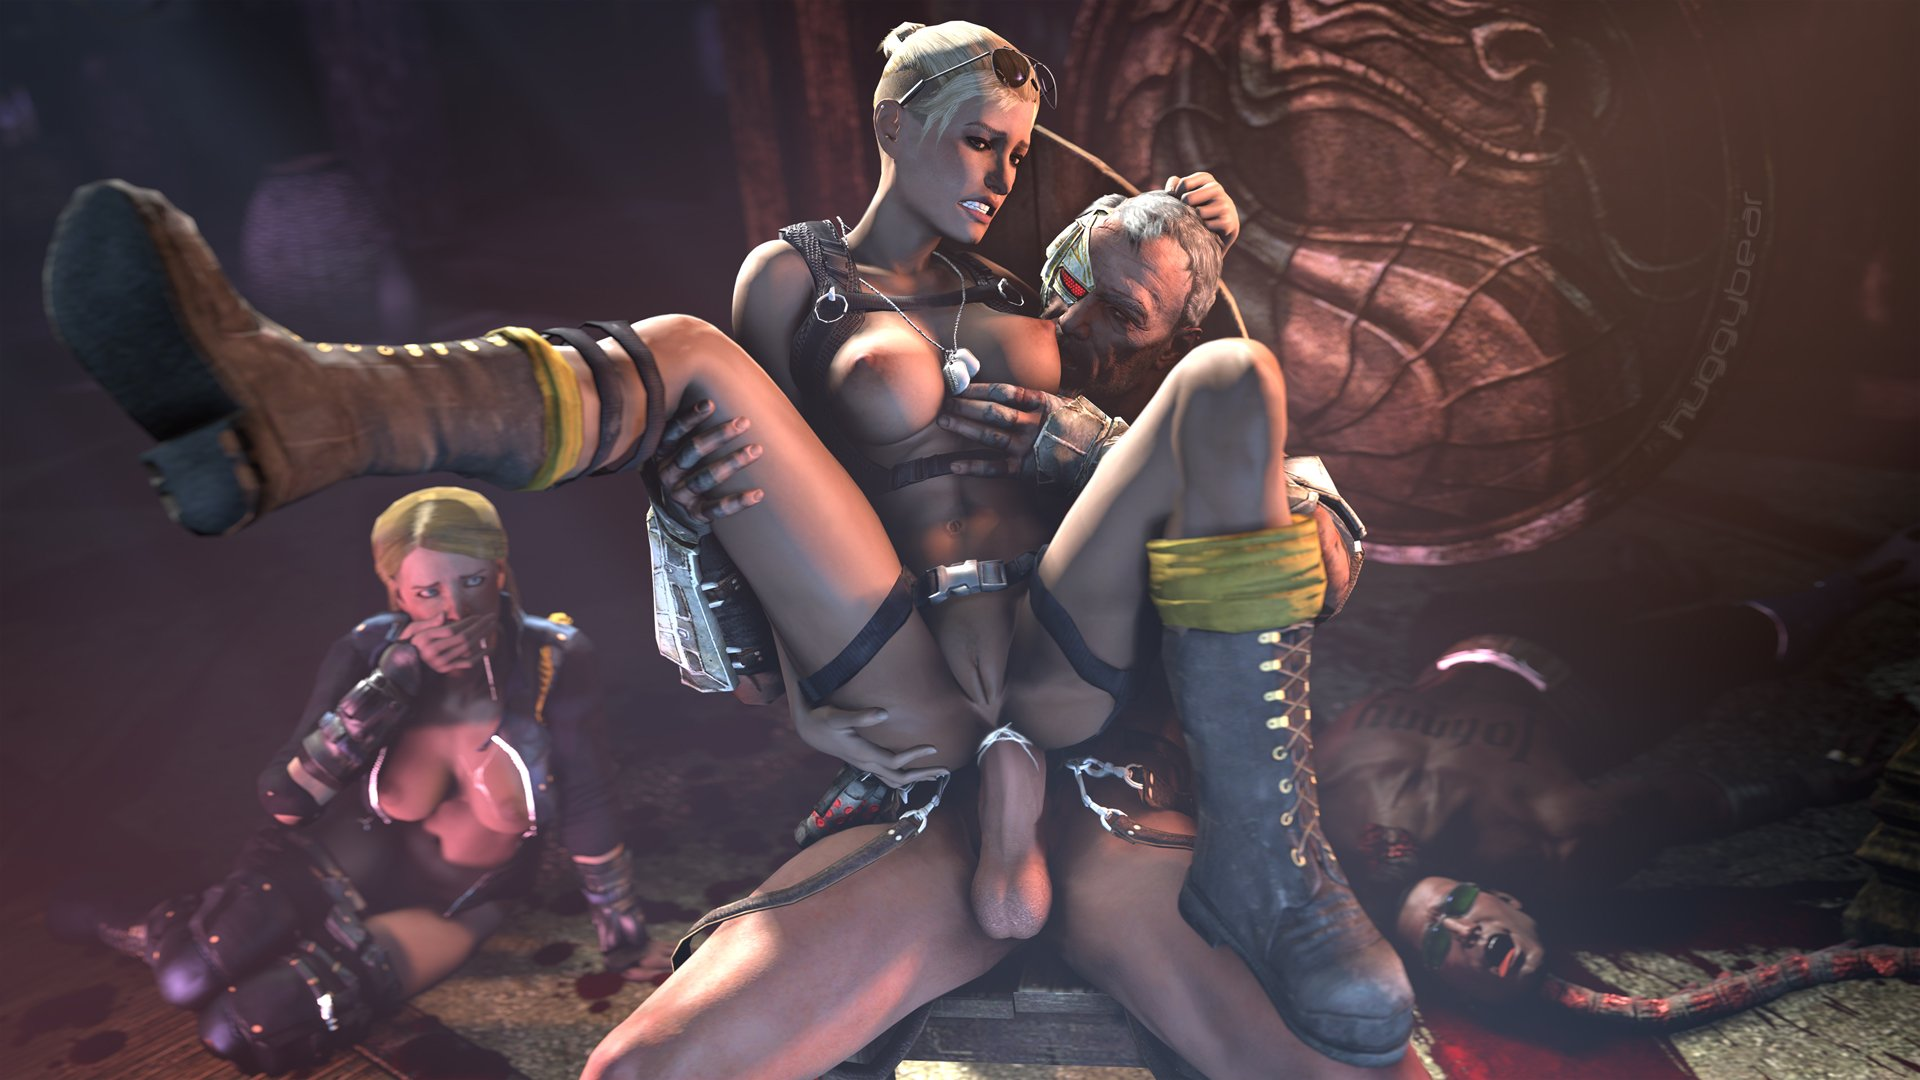 mortal-kombat-igra-video-porno